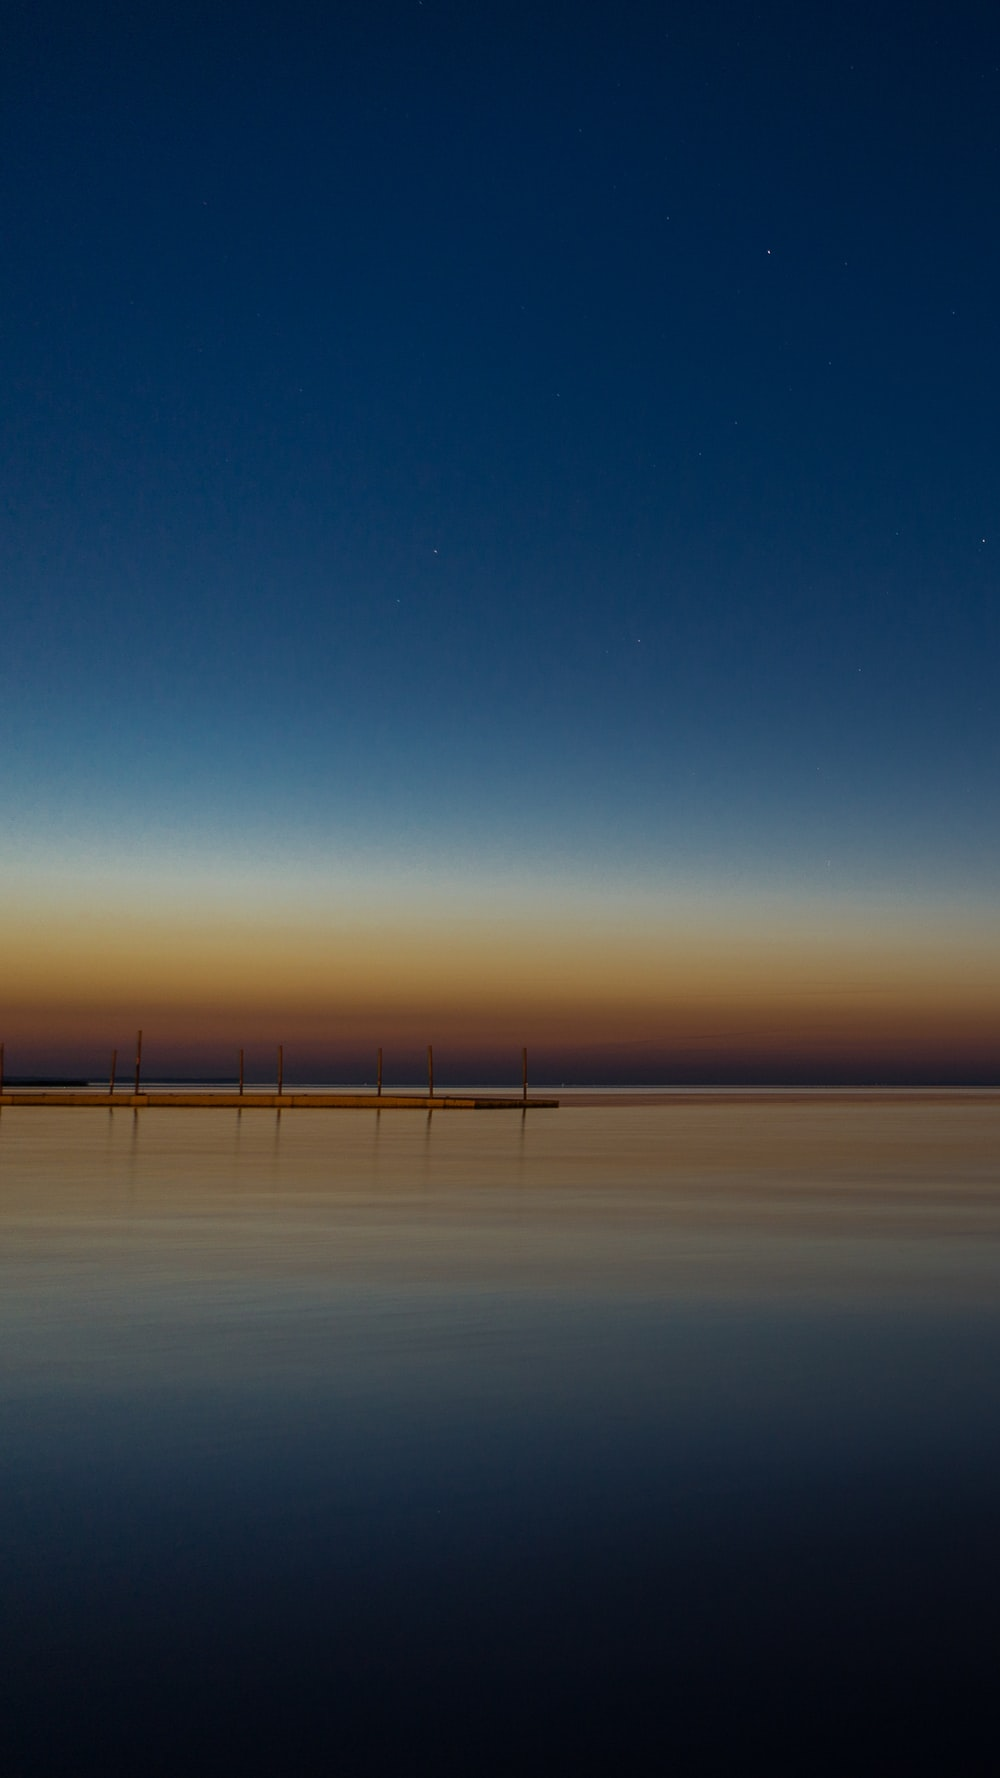 calm sea under blue sky during sunset